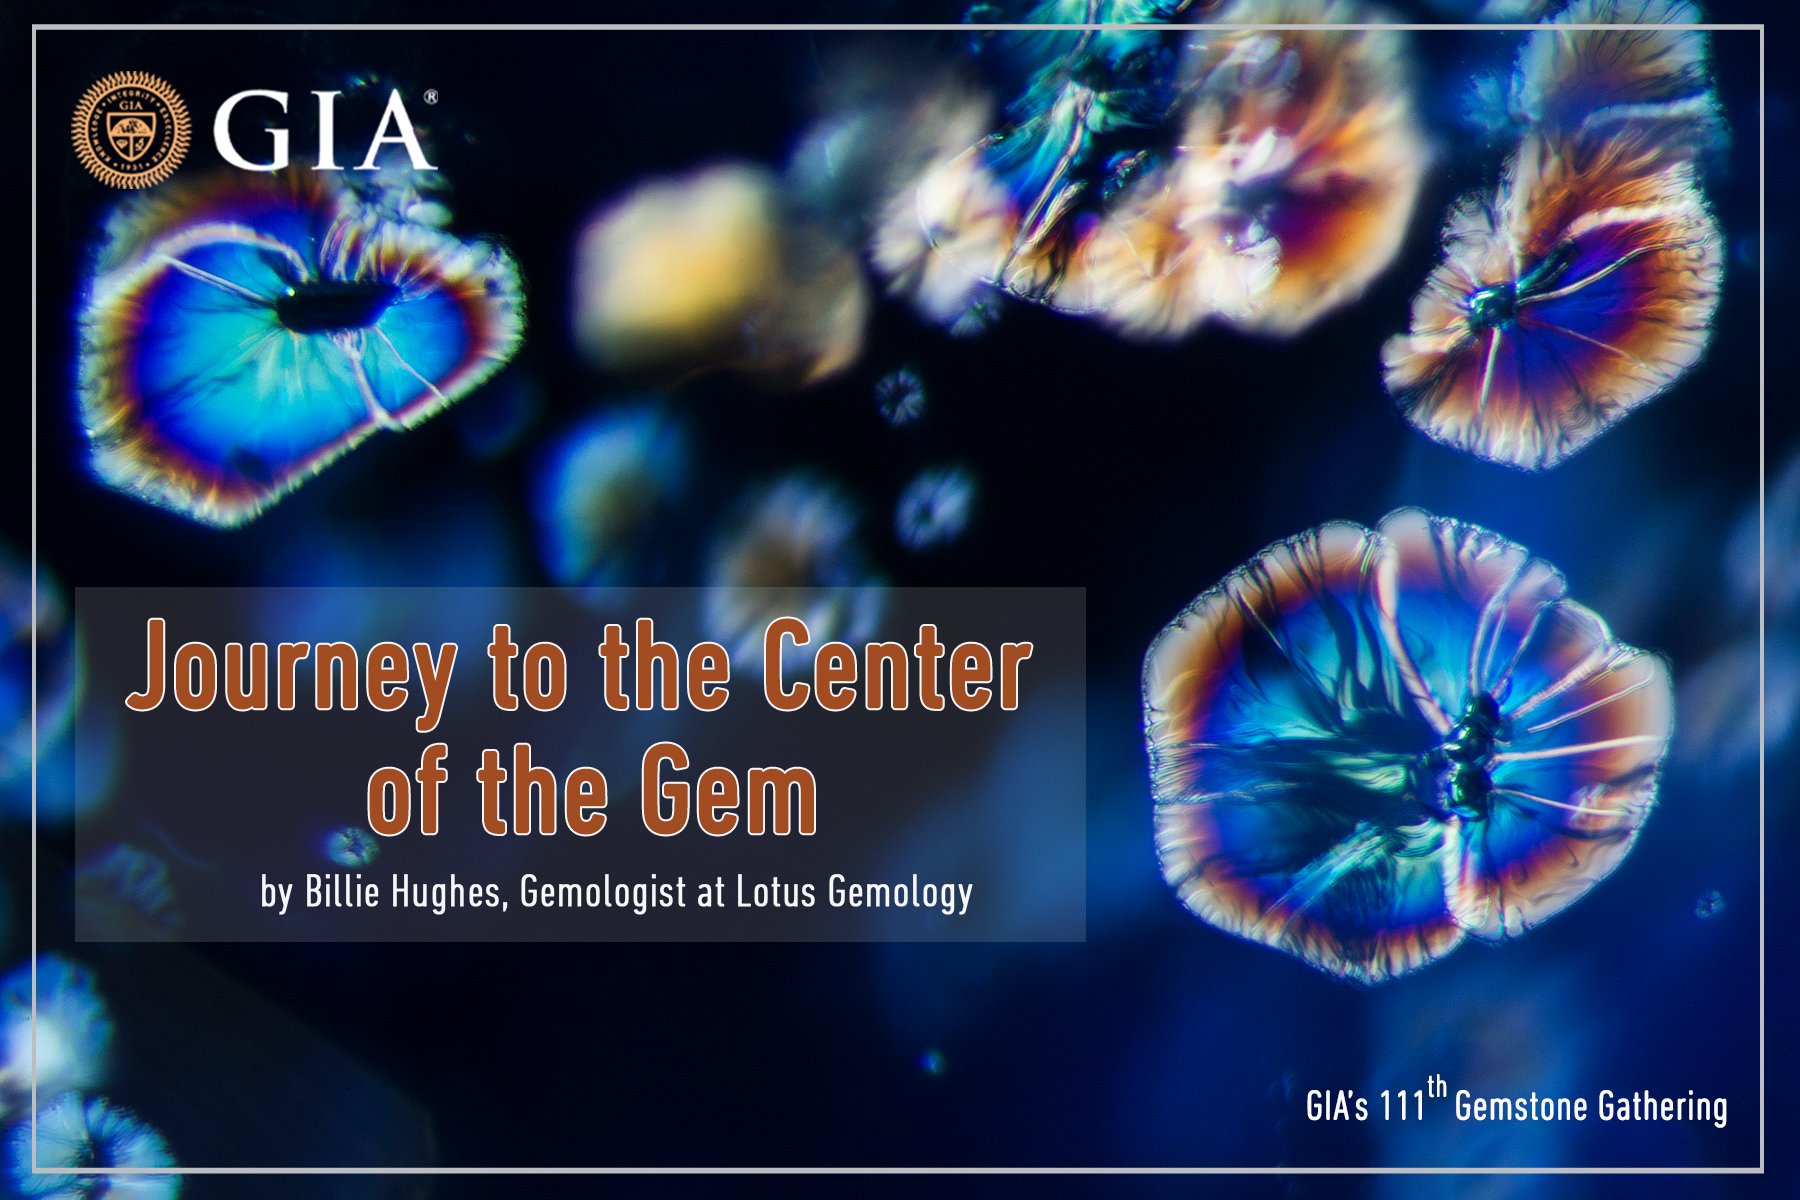 Journey to the Center of the Gem